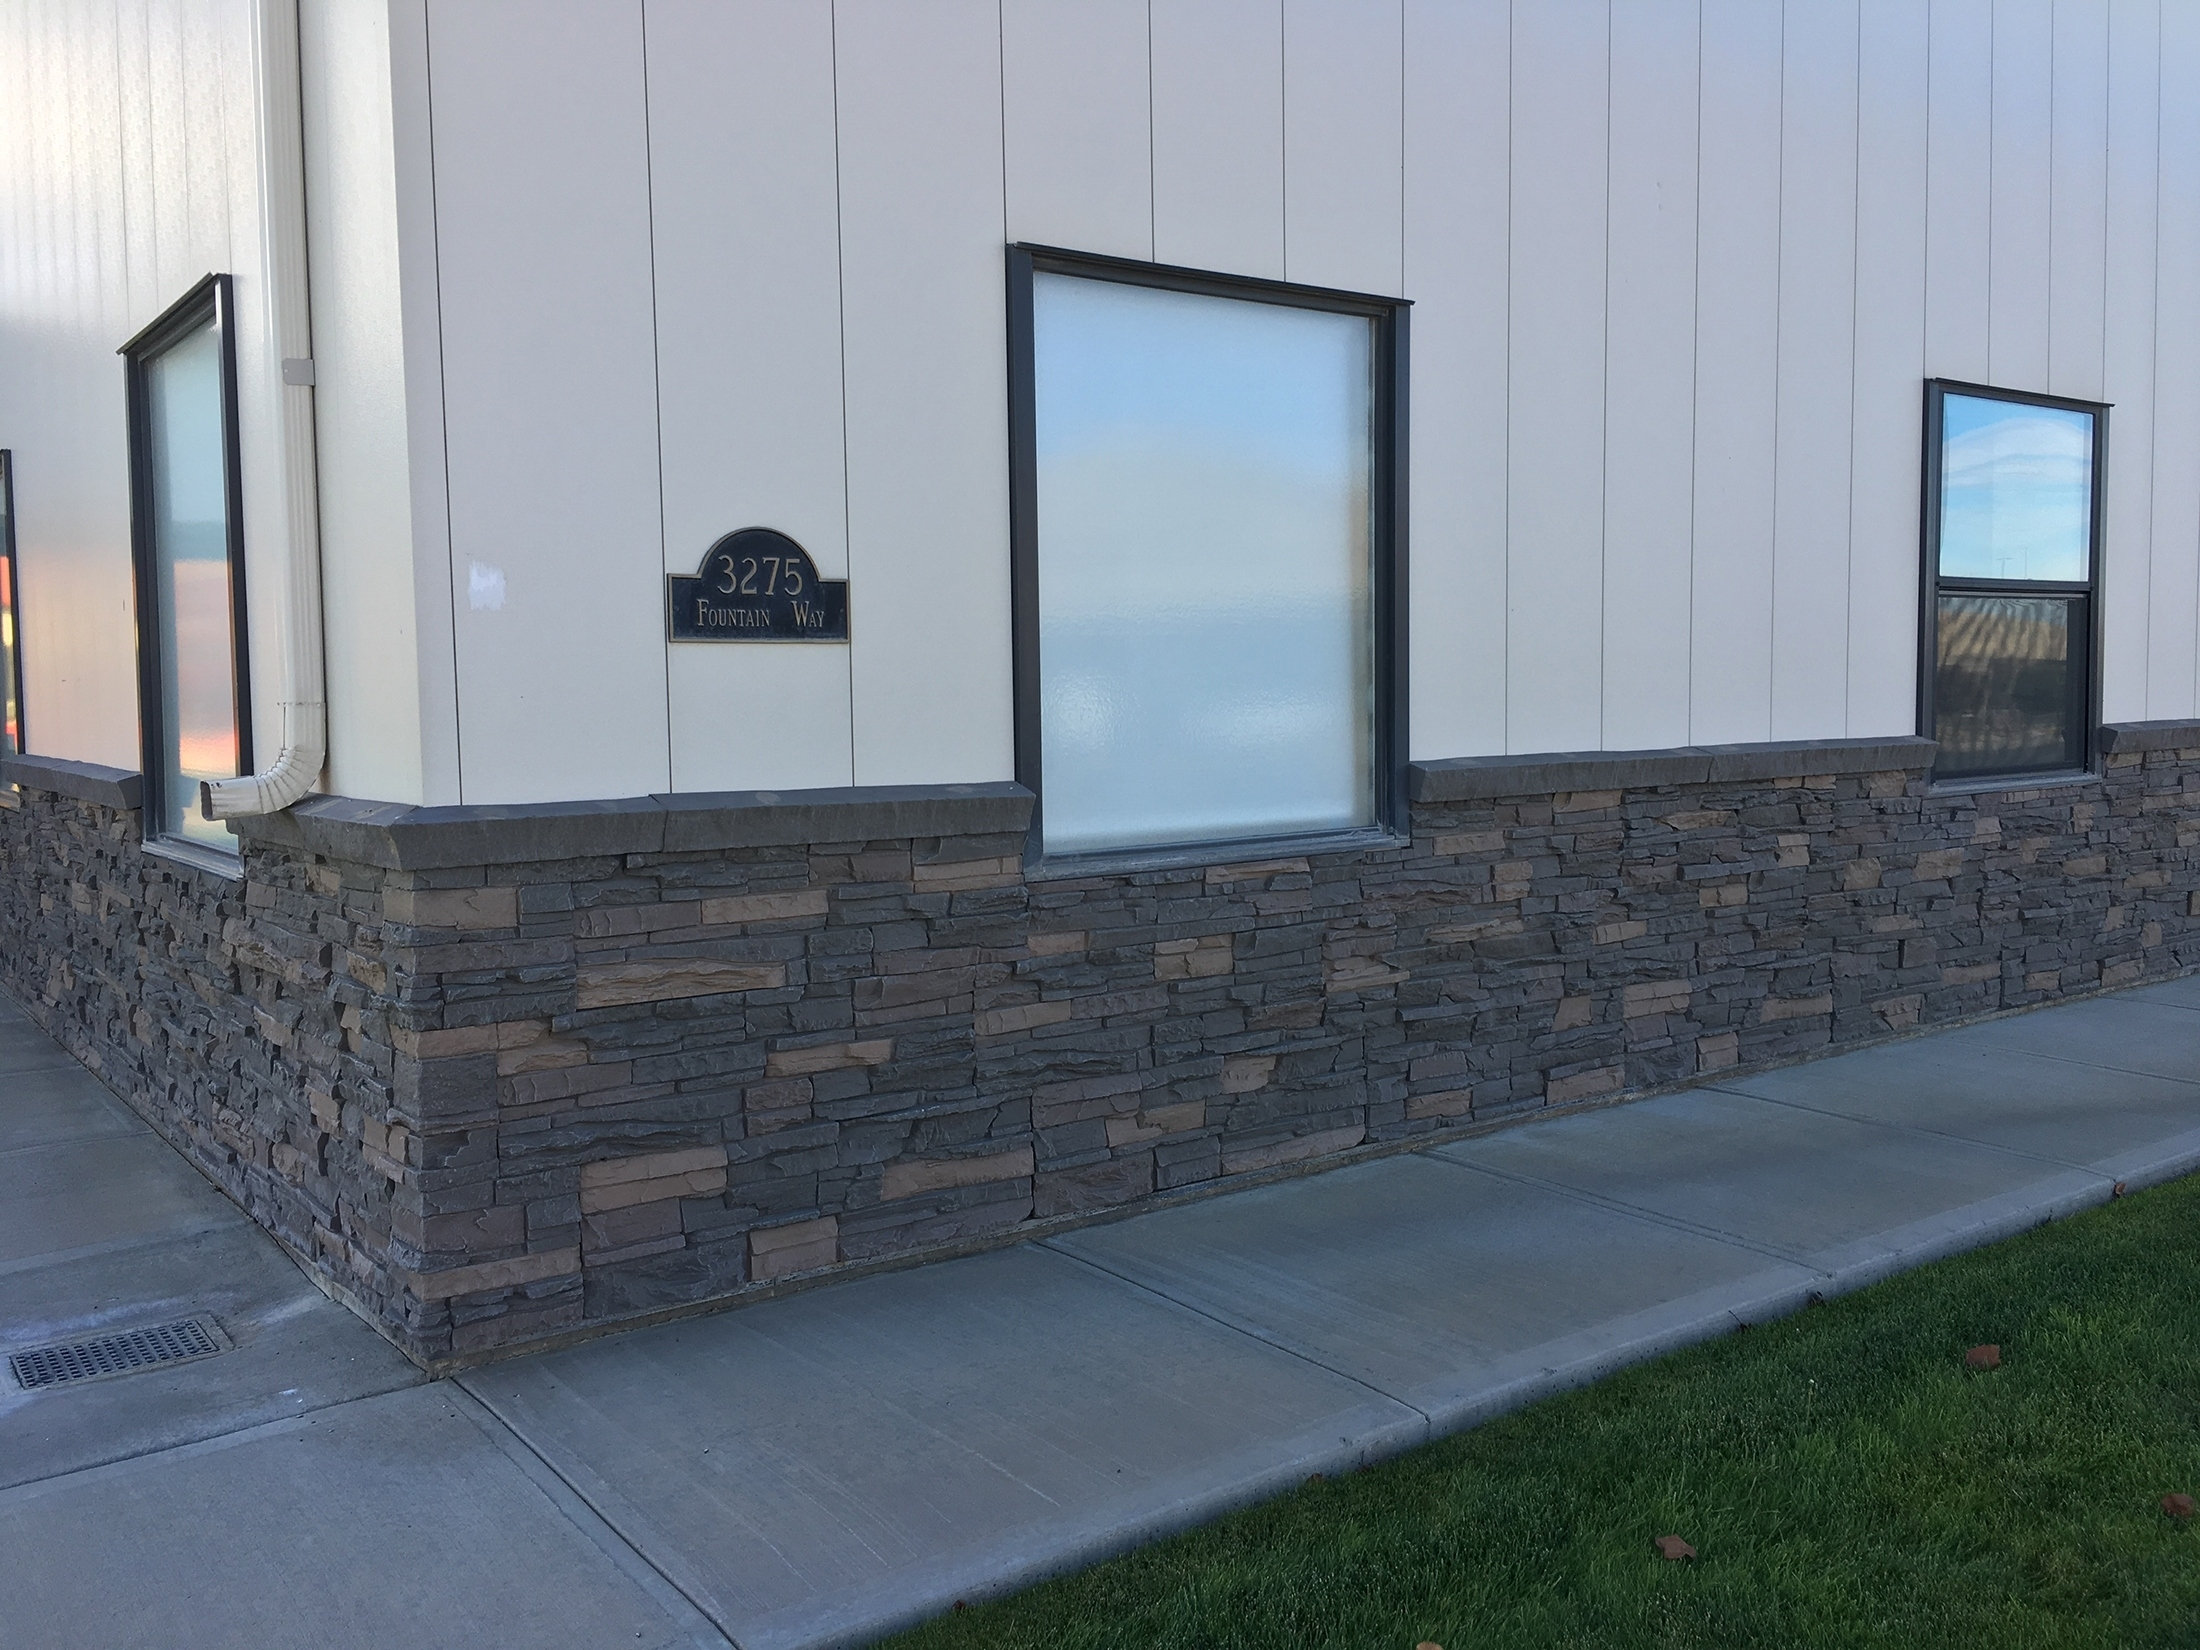 Stone Wall With Wainscoting